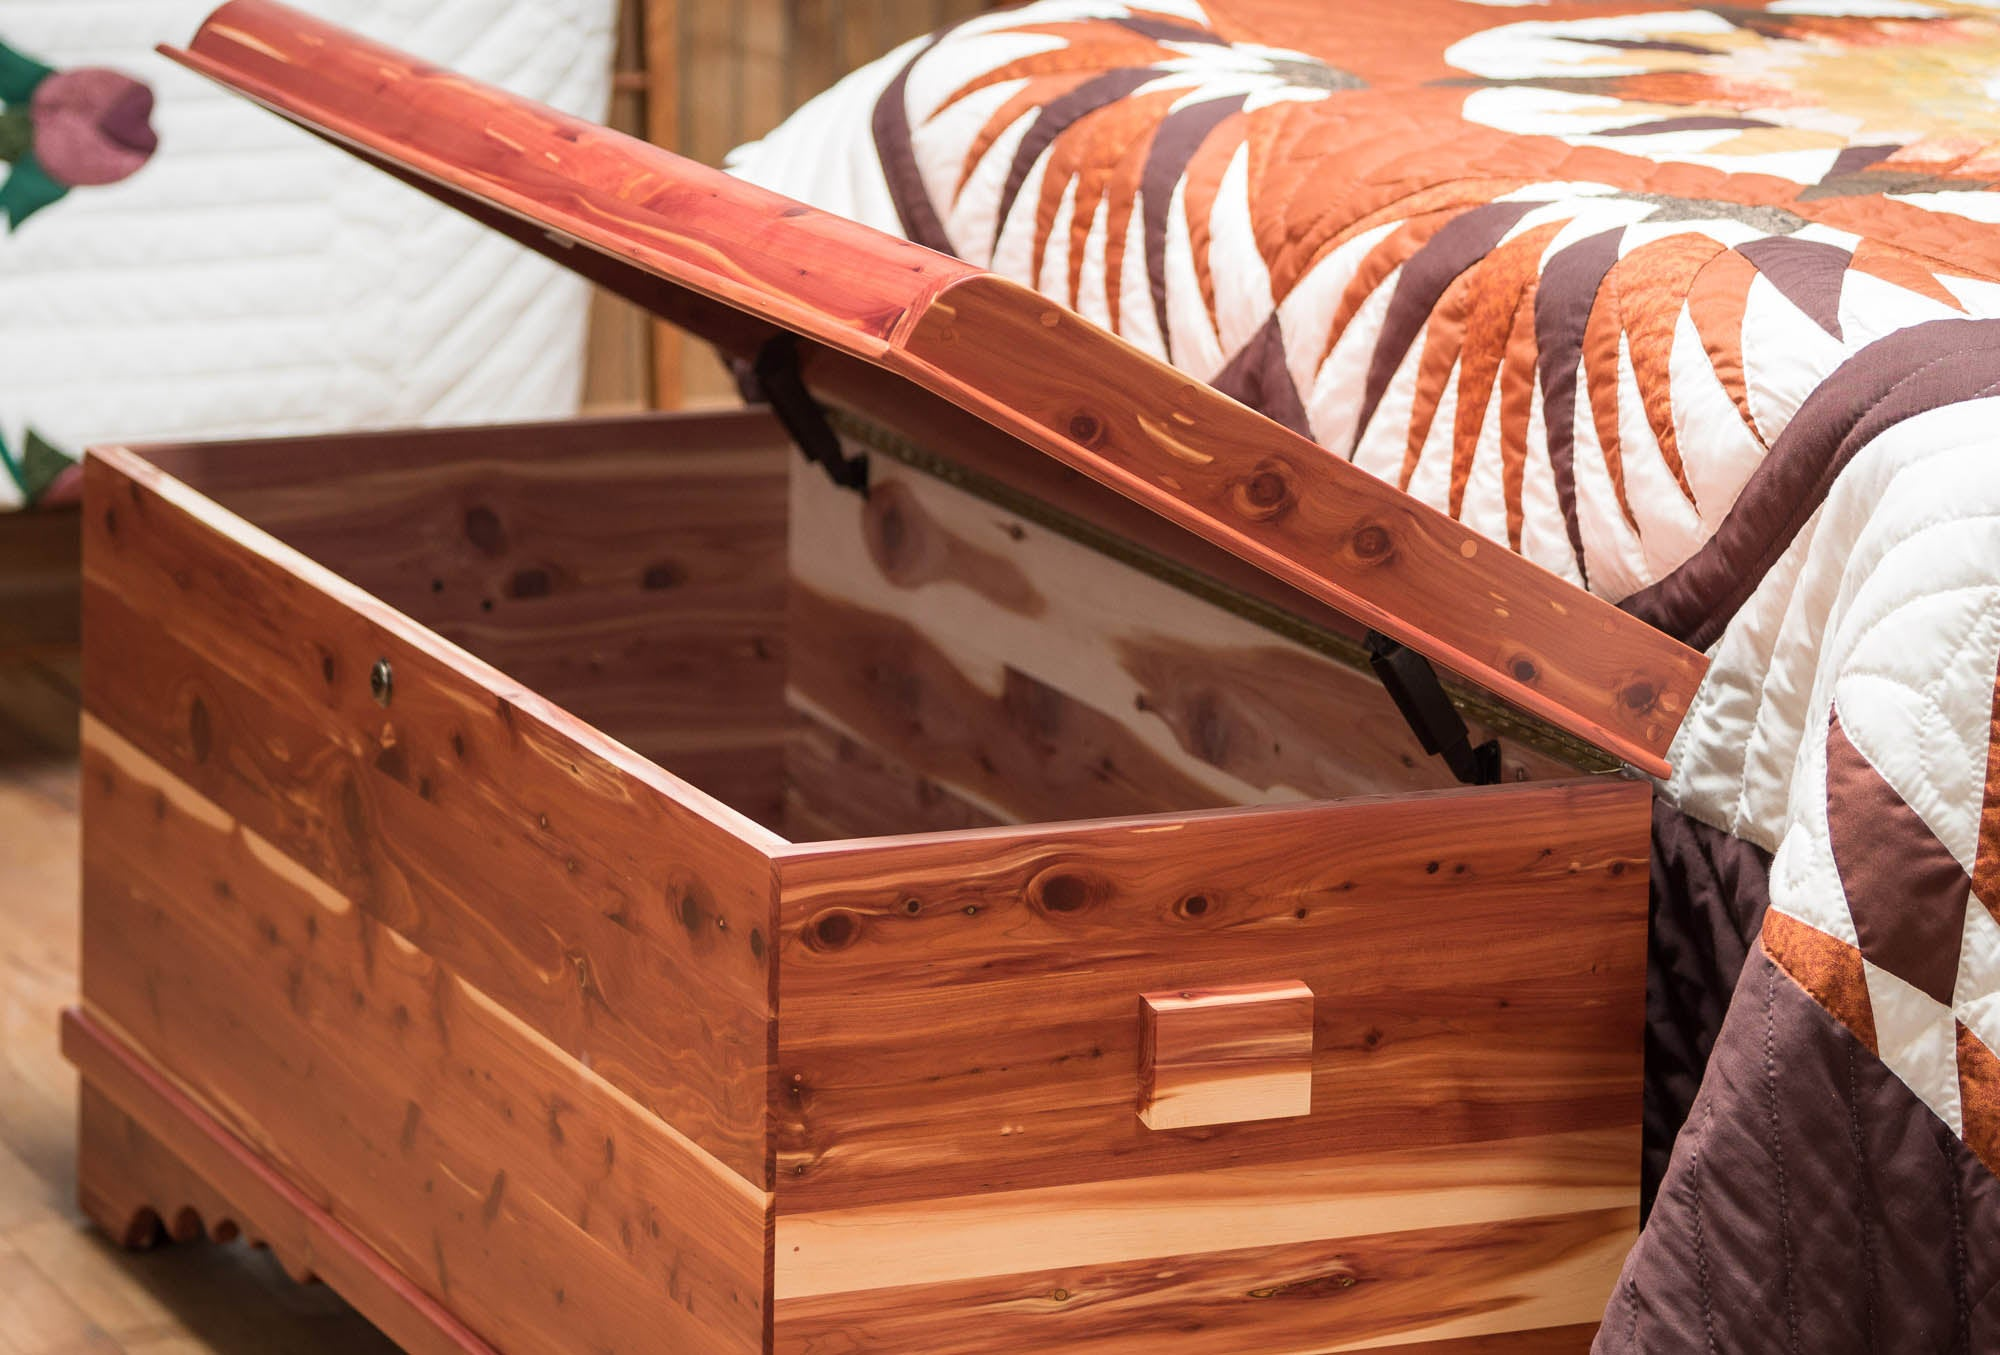 The Timeless Tradition of a Handcrafted Hope Chest